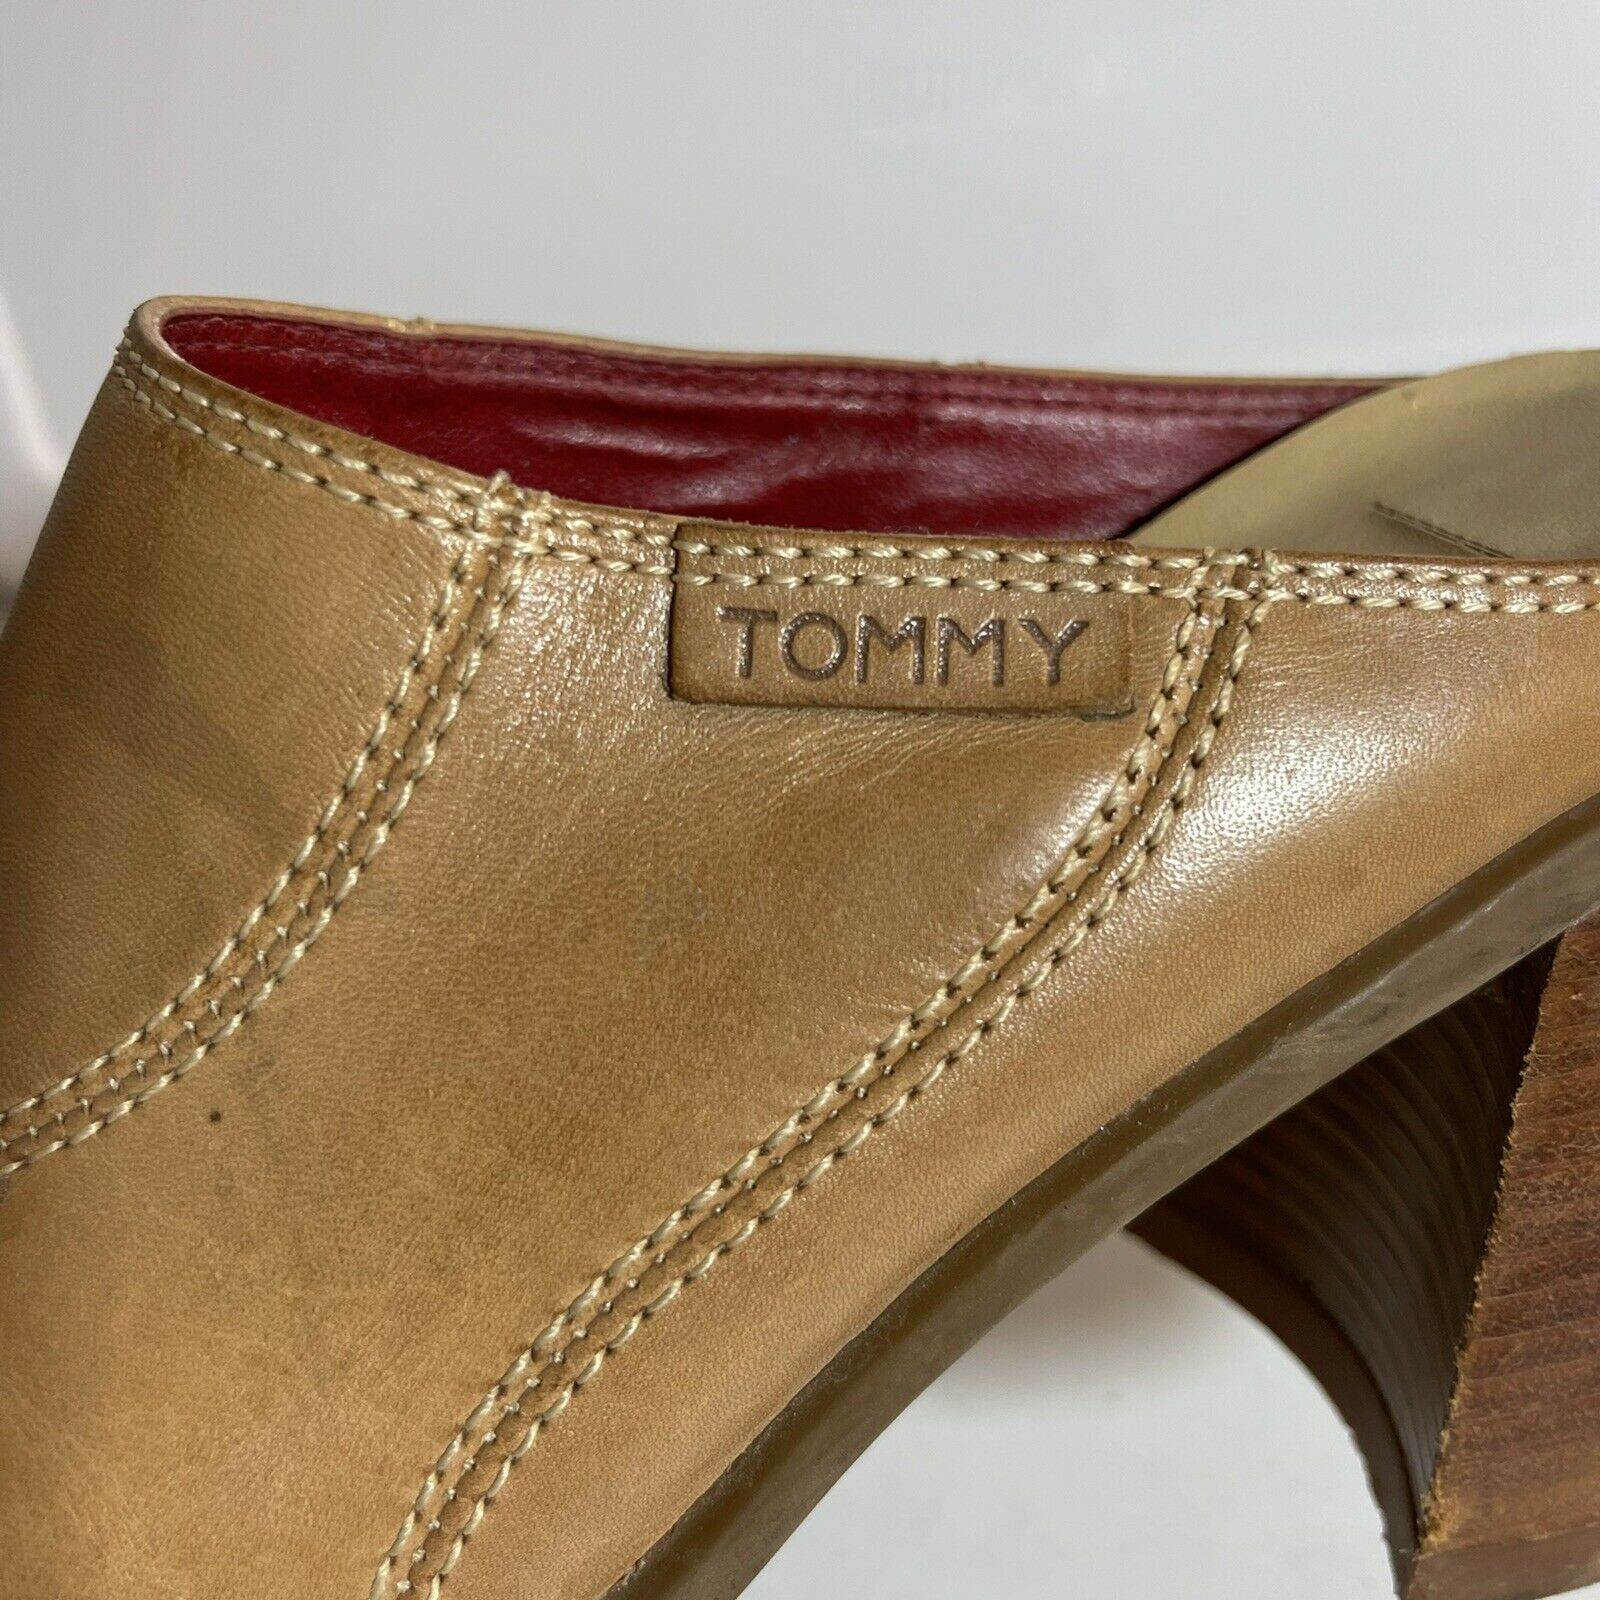 Tommy Hilfiger Leather Clogs Mules Womens 7-7.5 T… - image 4